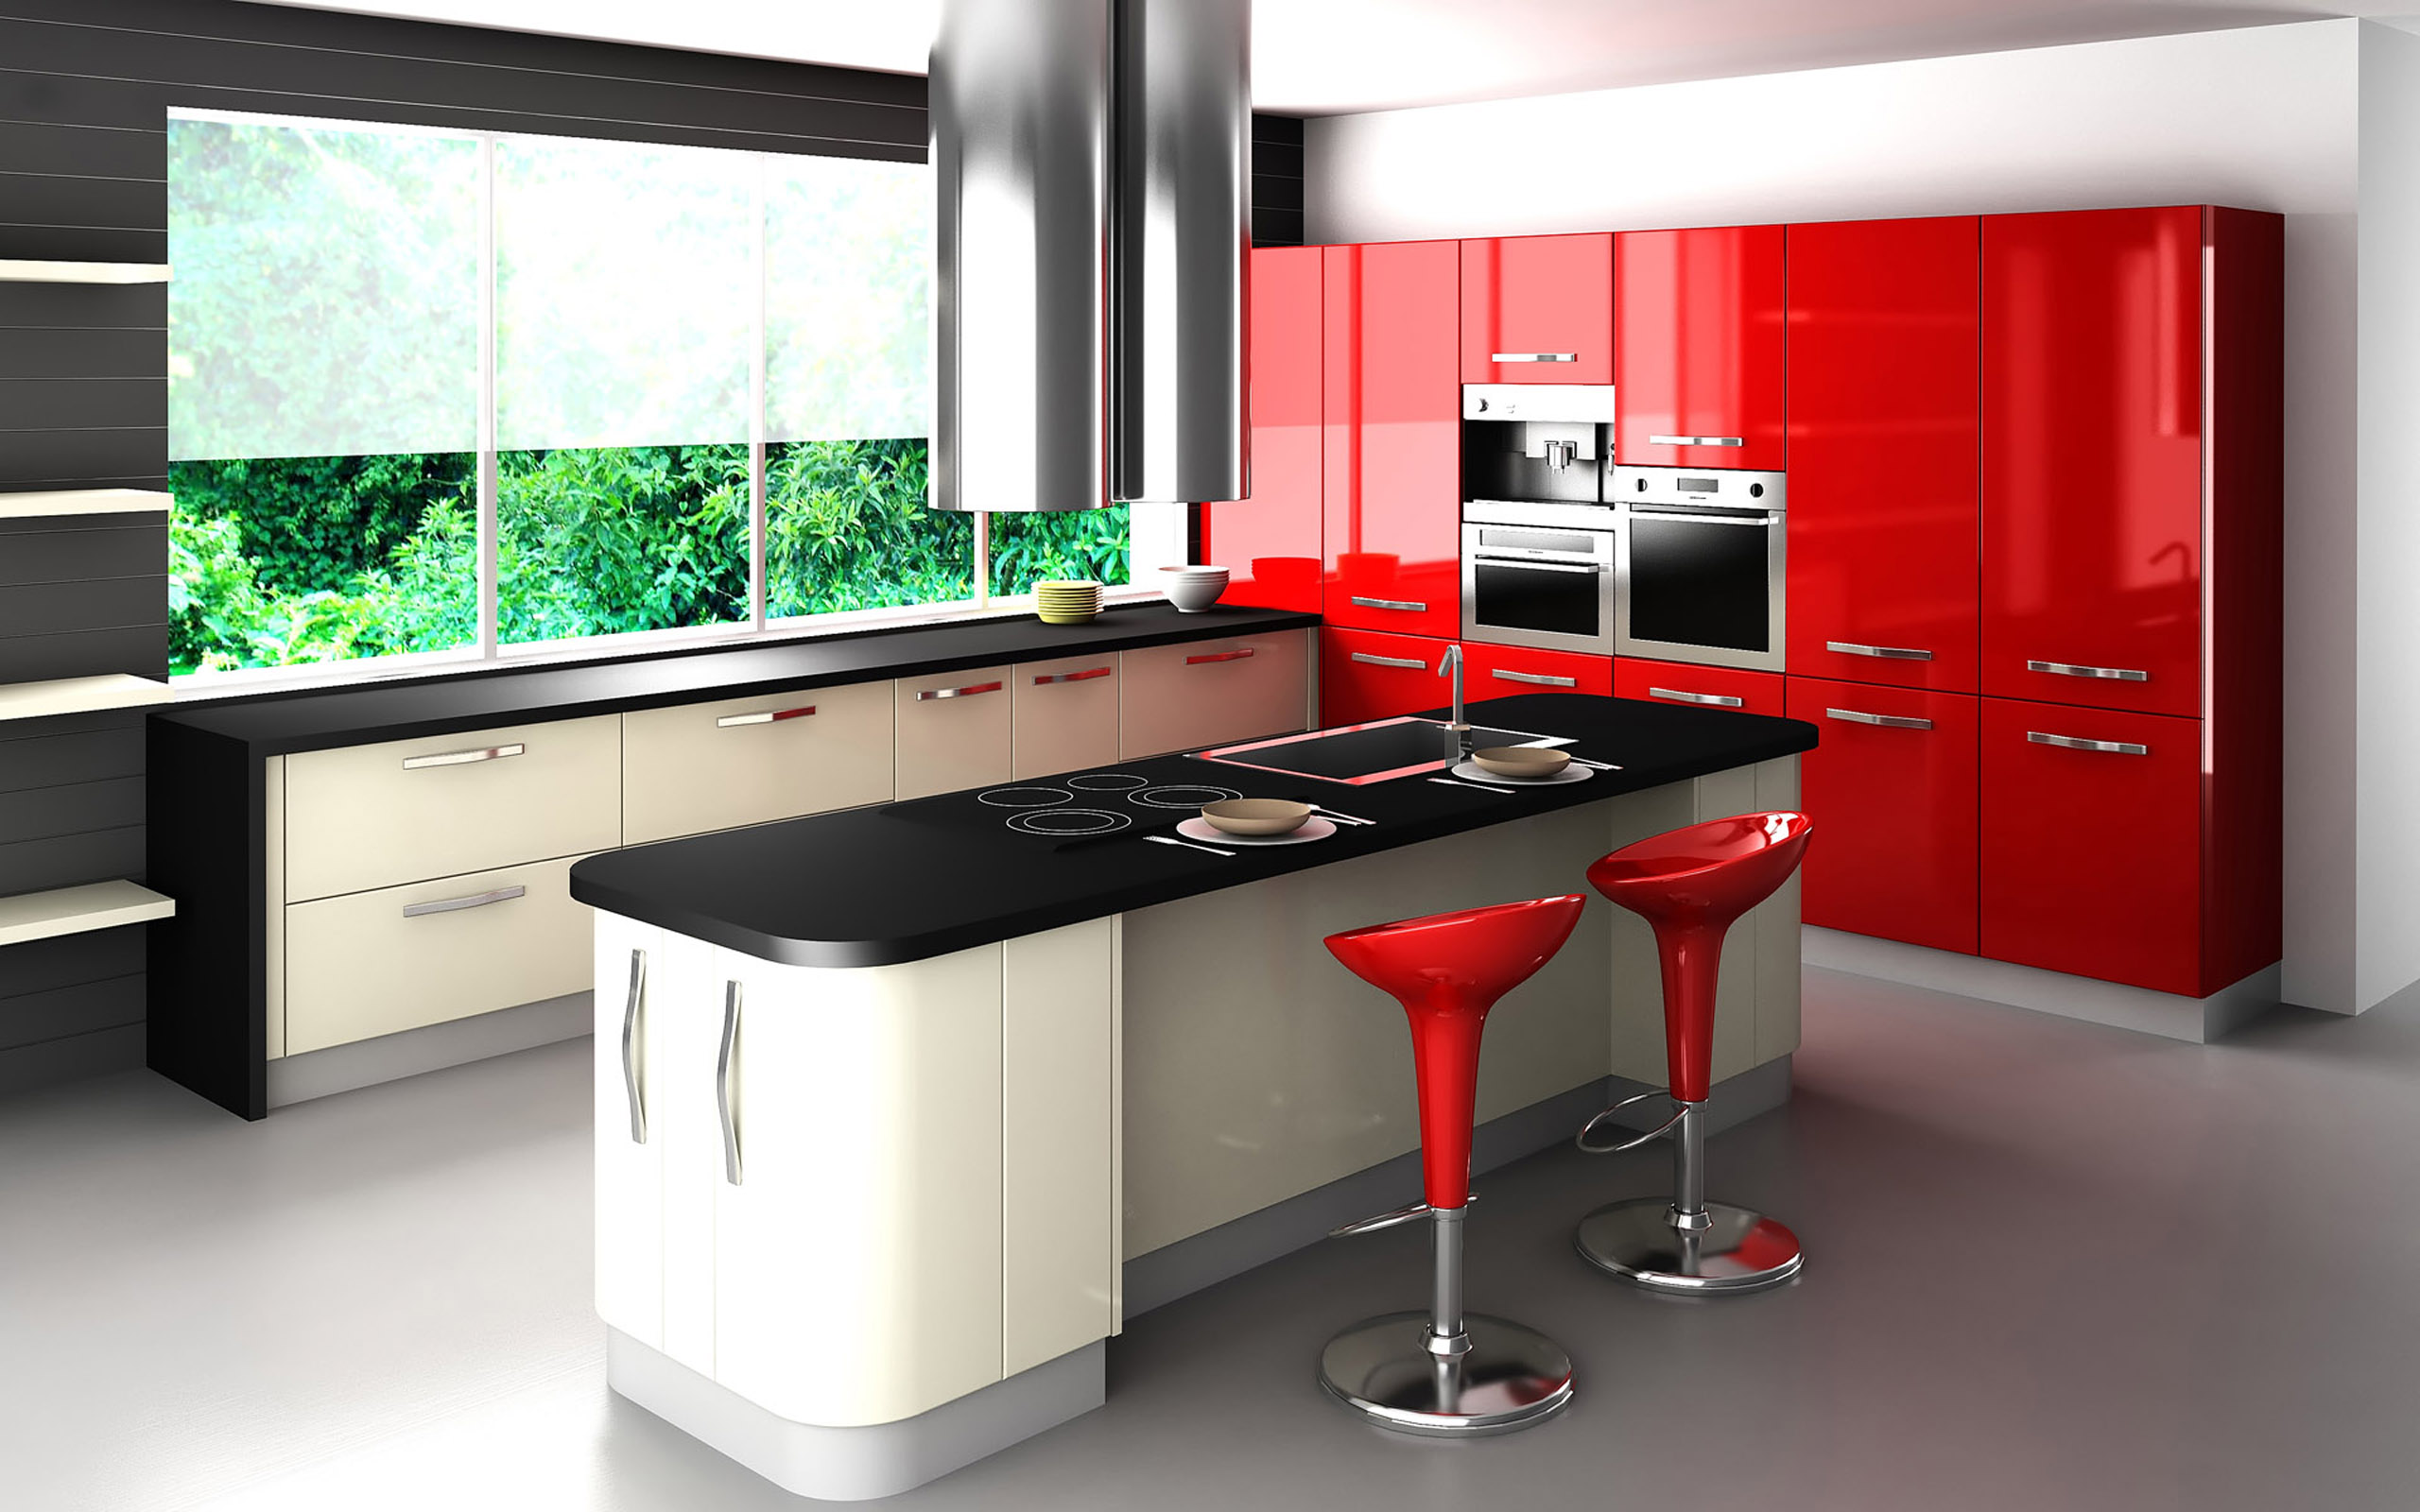 Modular Kitchen In Small Space Modular Furniture For Small Spaces Homesfeed